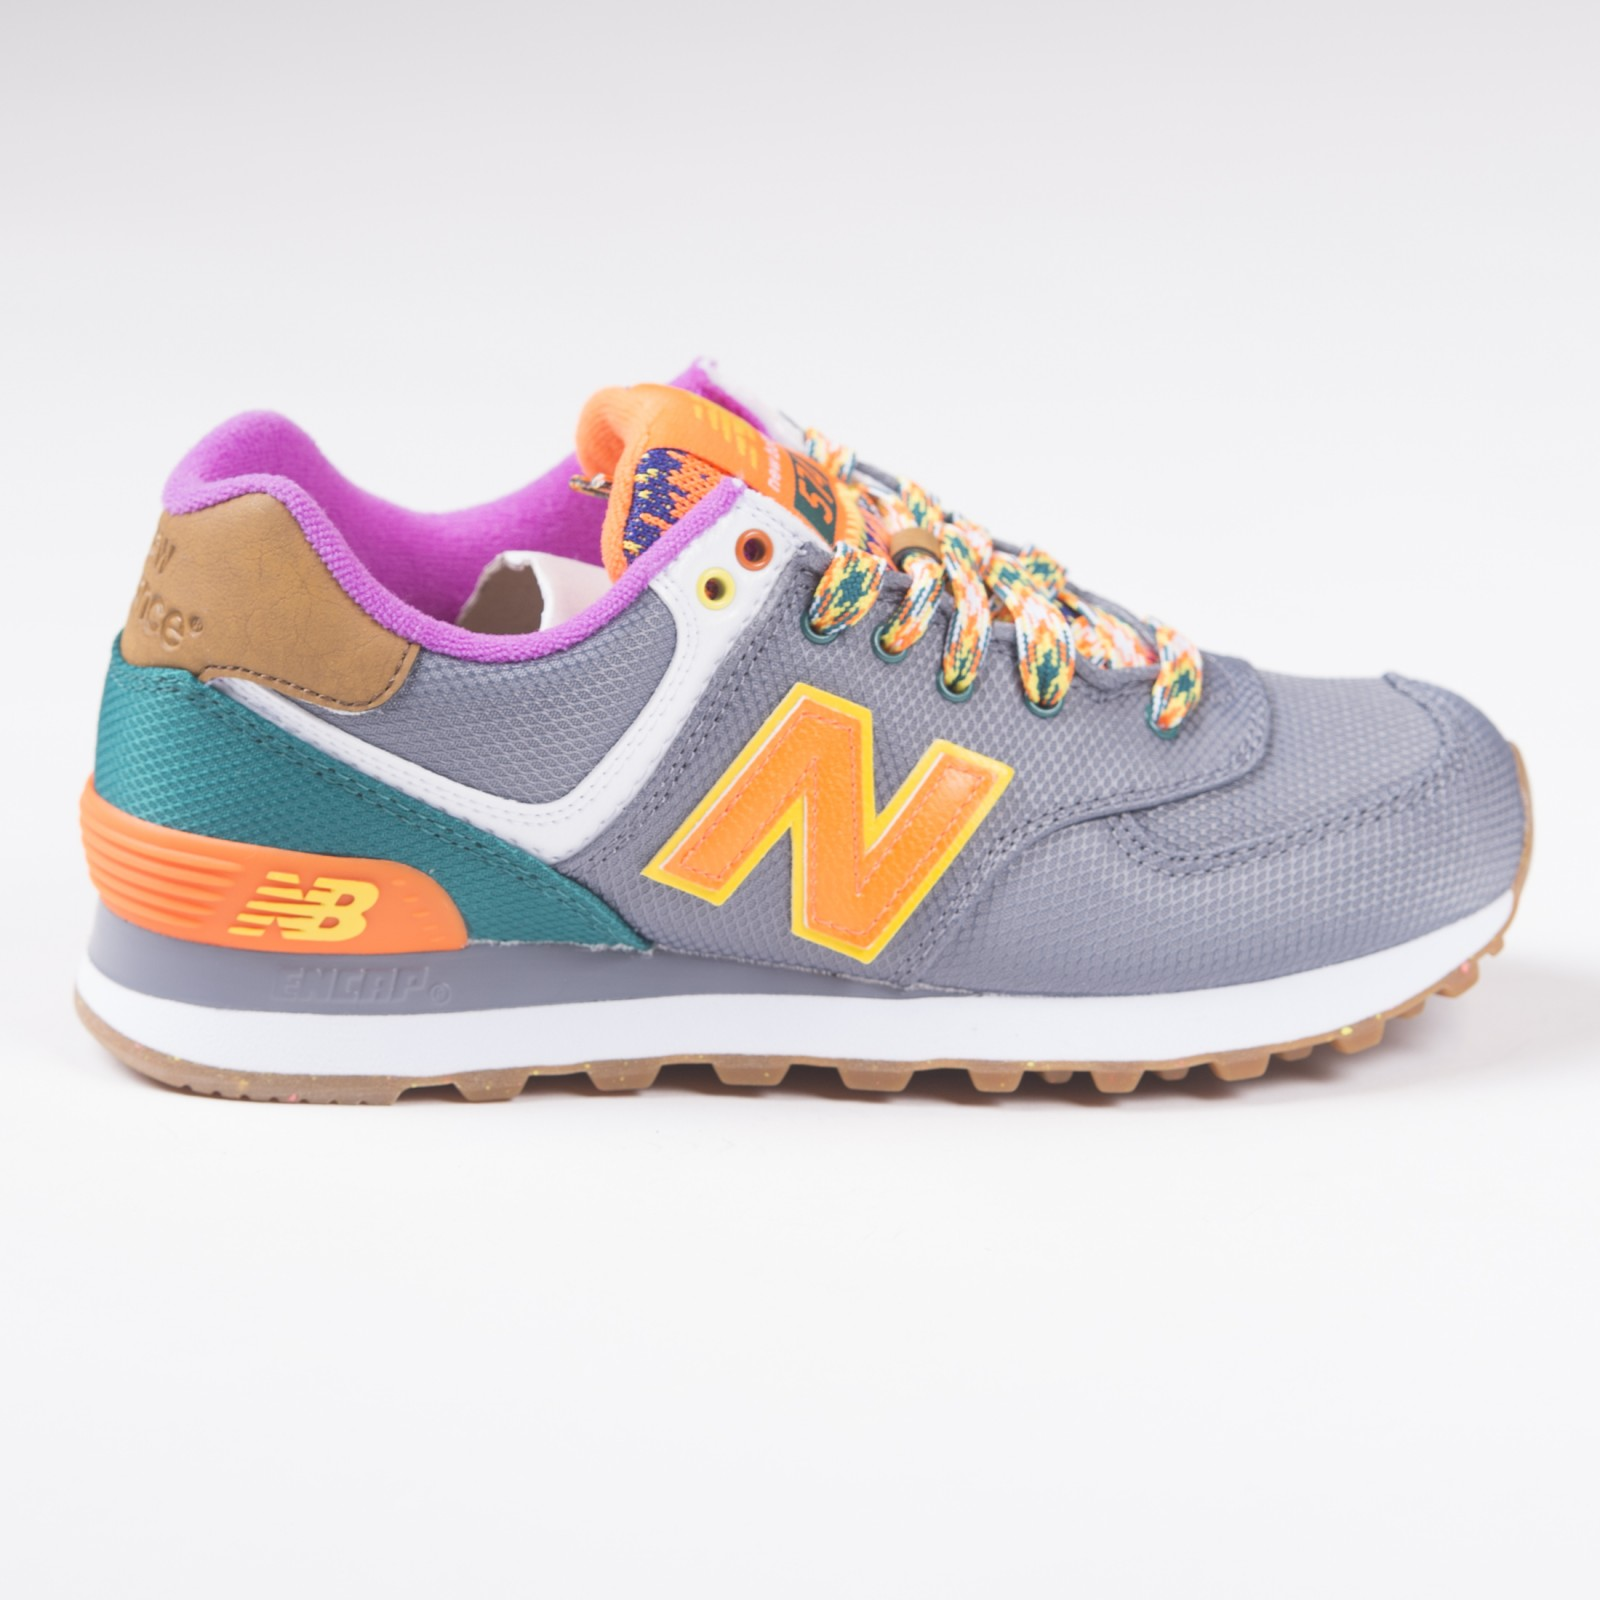 new balance 574 weekend expedition womens